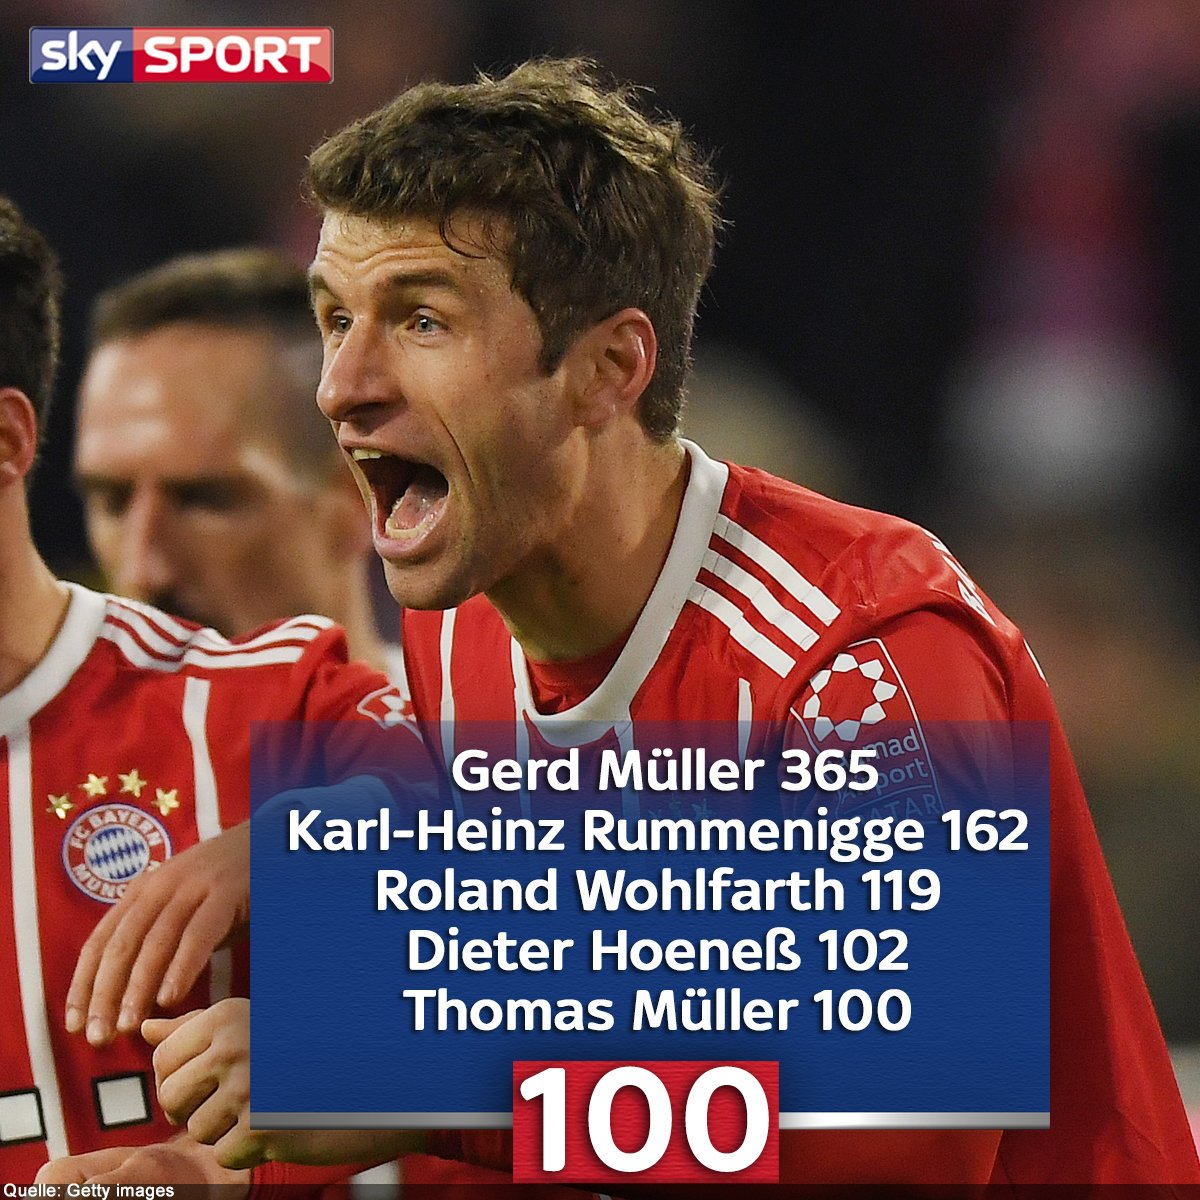 Thomas Müller enters the club of 100 Bundesliga goals for Bayern [Sky] https://t.co/mCxFB4nwpY